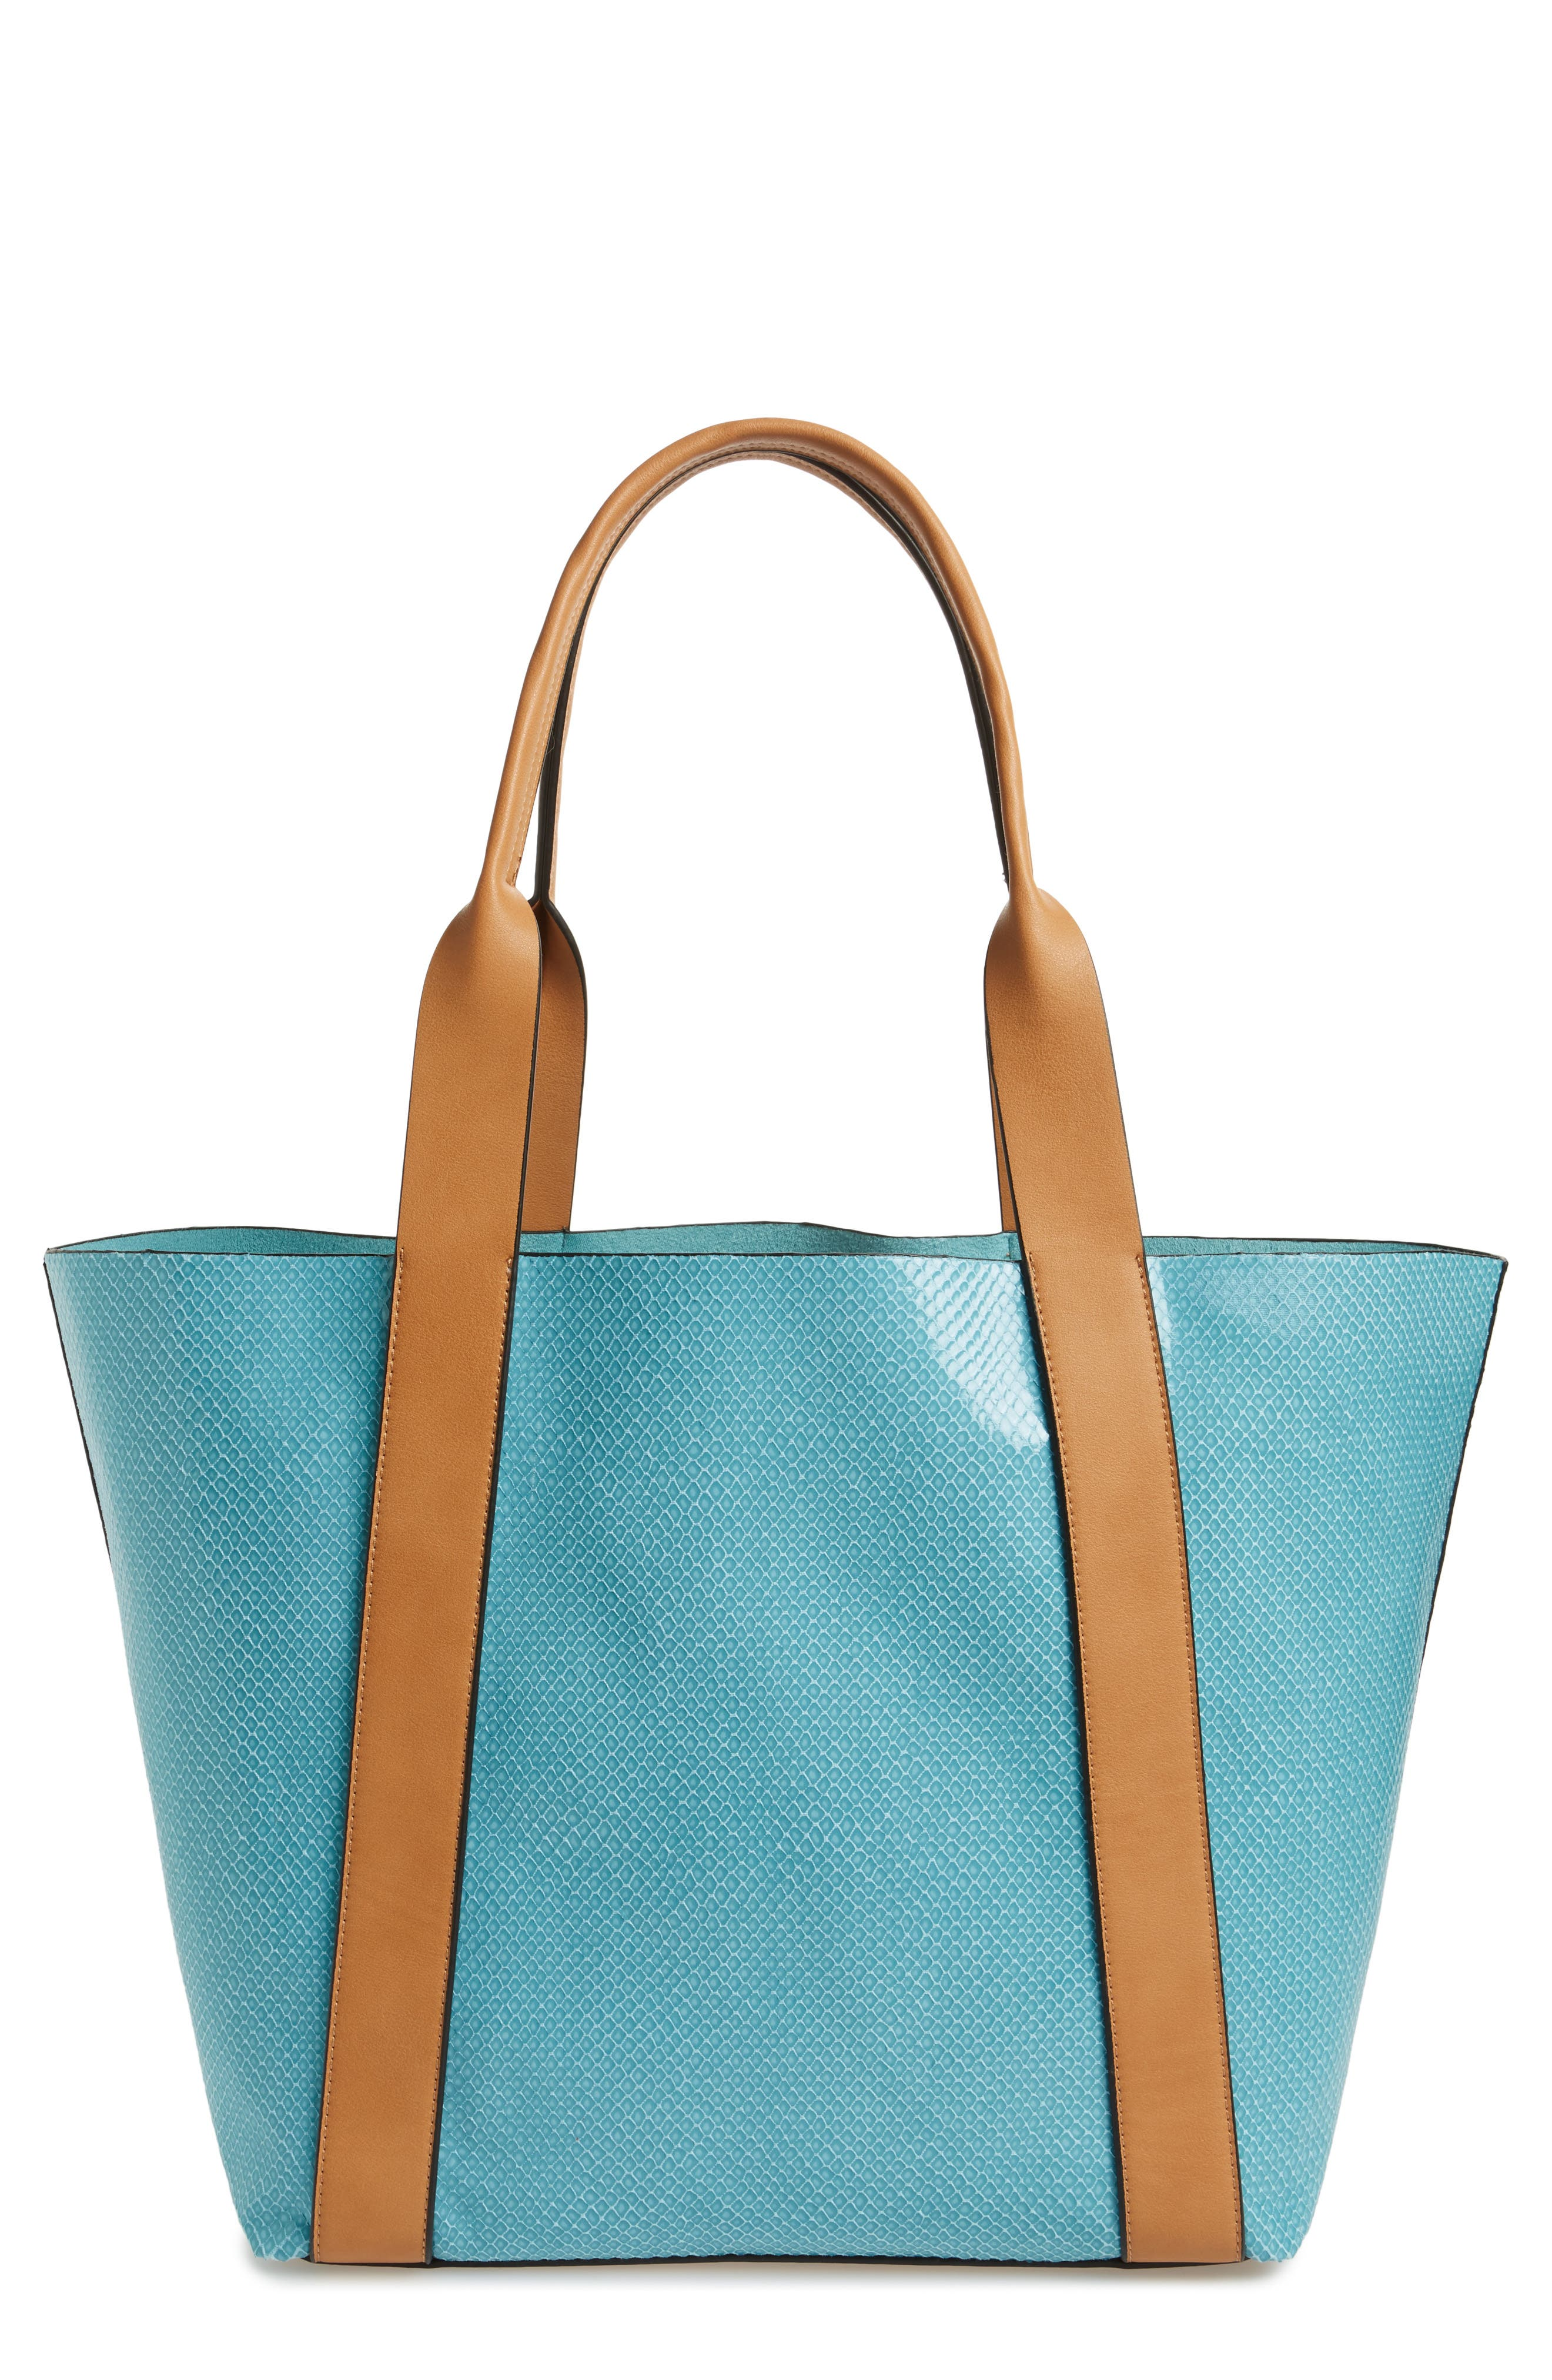 Alternate Image 1 Selected - Sondra Roberts Faux Leather Tote & Wristlet